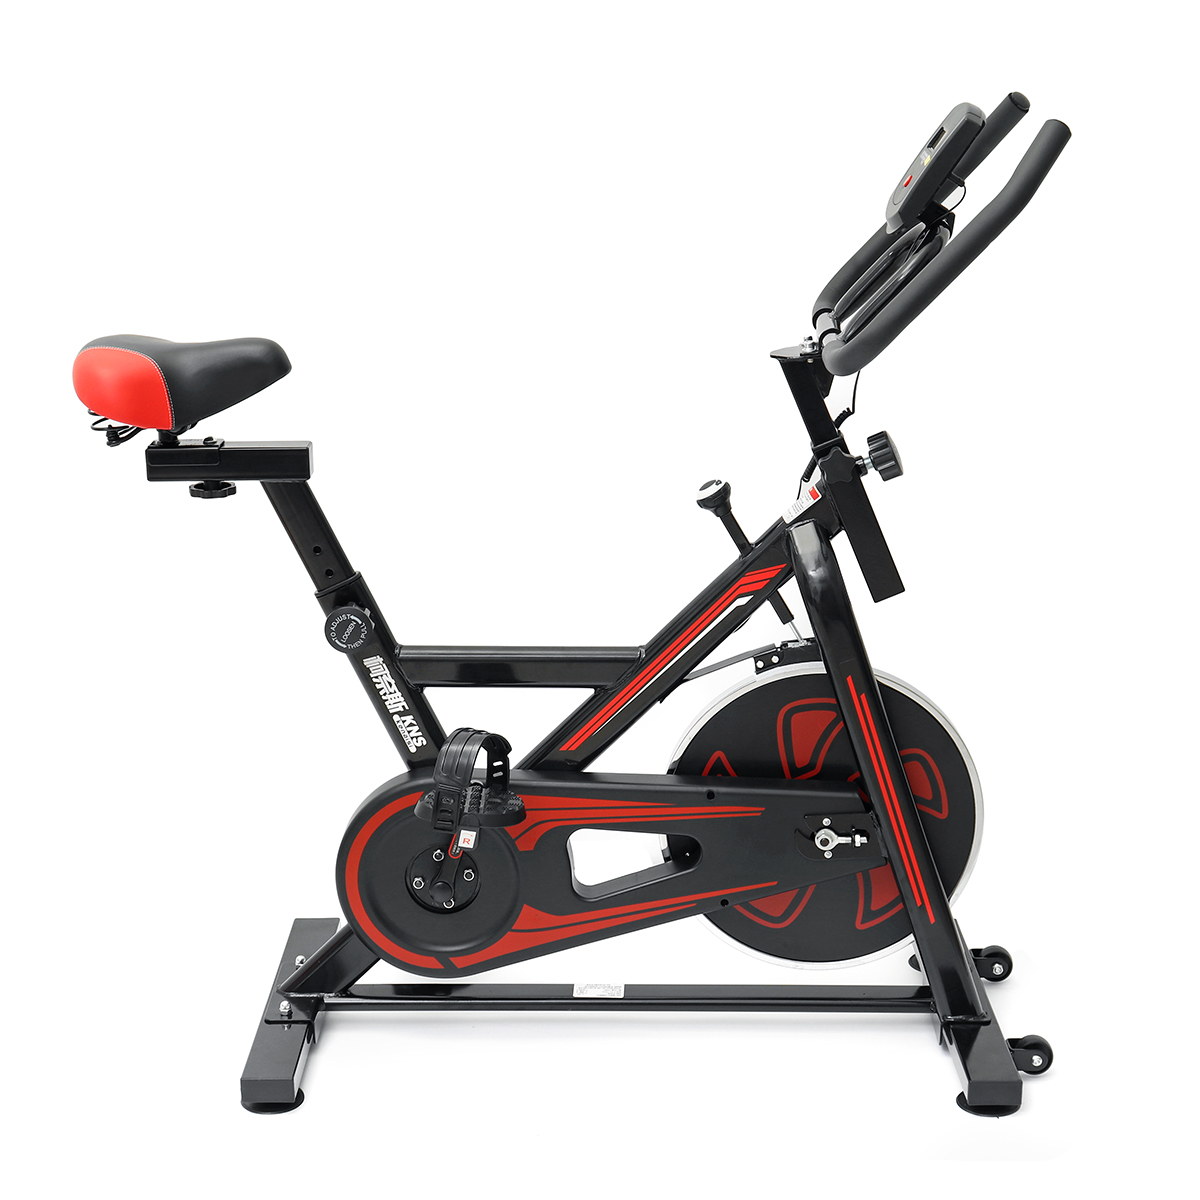 KNS-D003 Exercise Bike LCD Display Indoor Cycling Trainer Fitness Workout Machine Spinning Bike Stationary